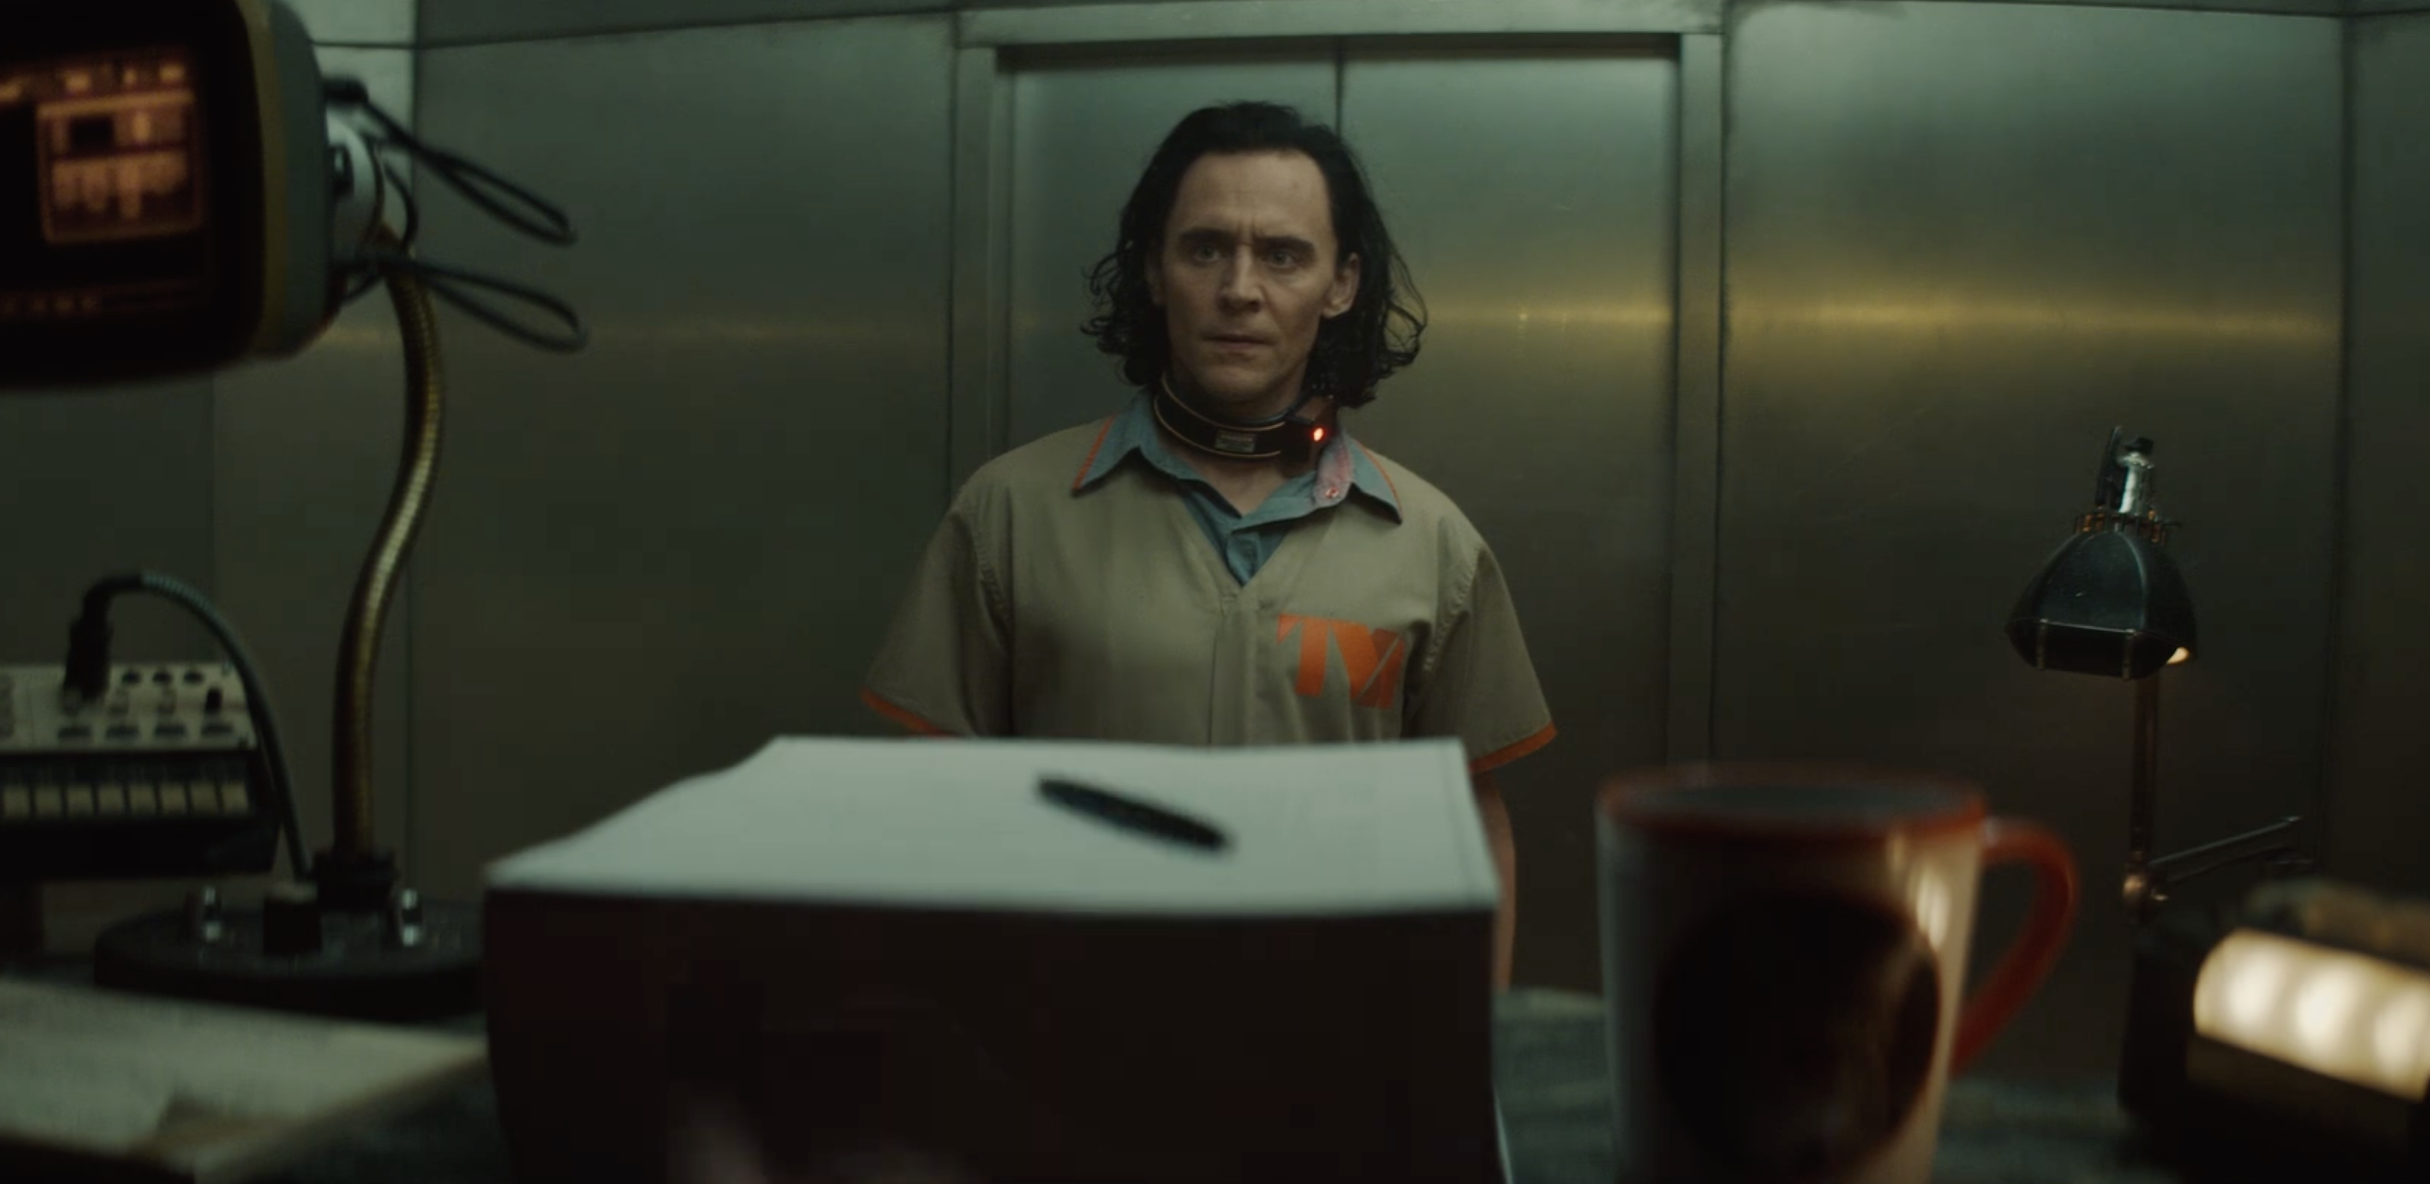 Loki faces a computer screen in a TVA prison jumpsuit from Loki on Disney Plus